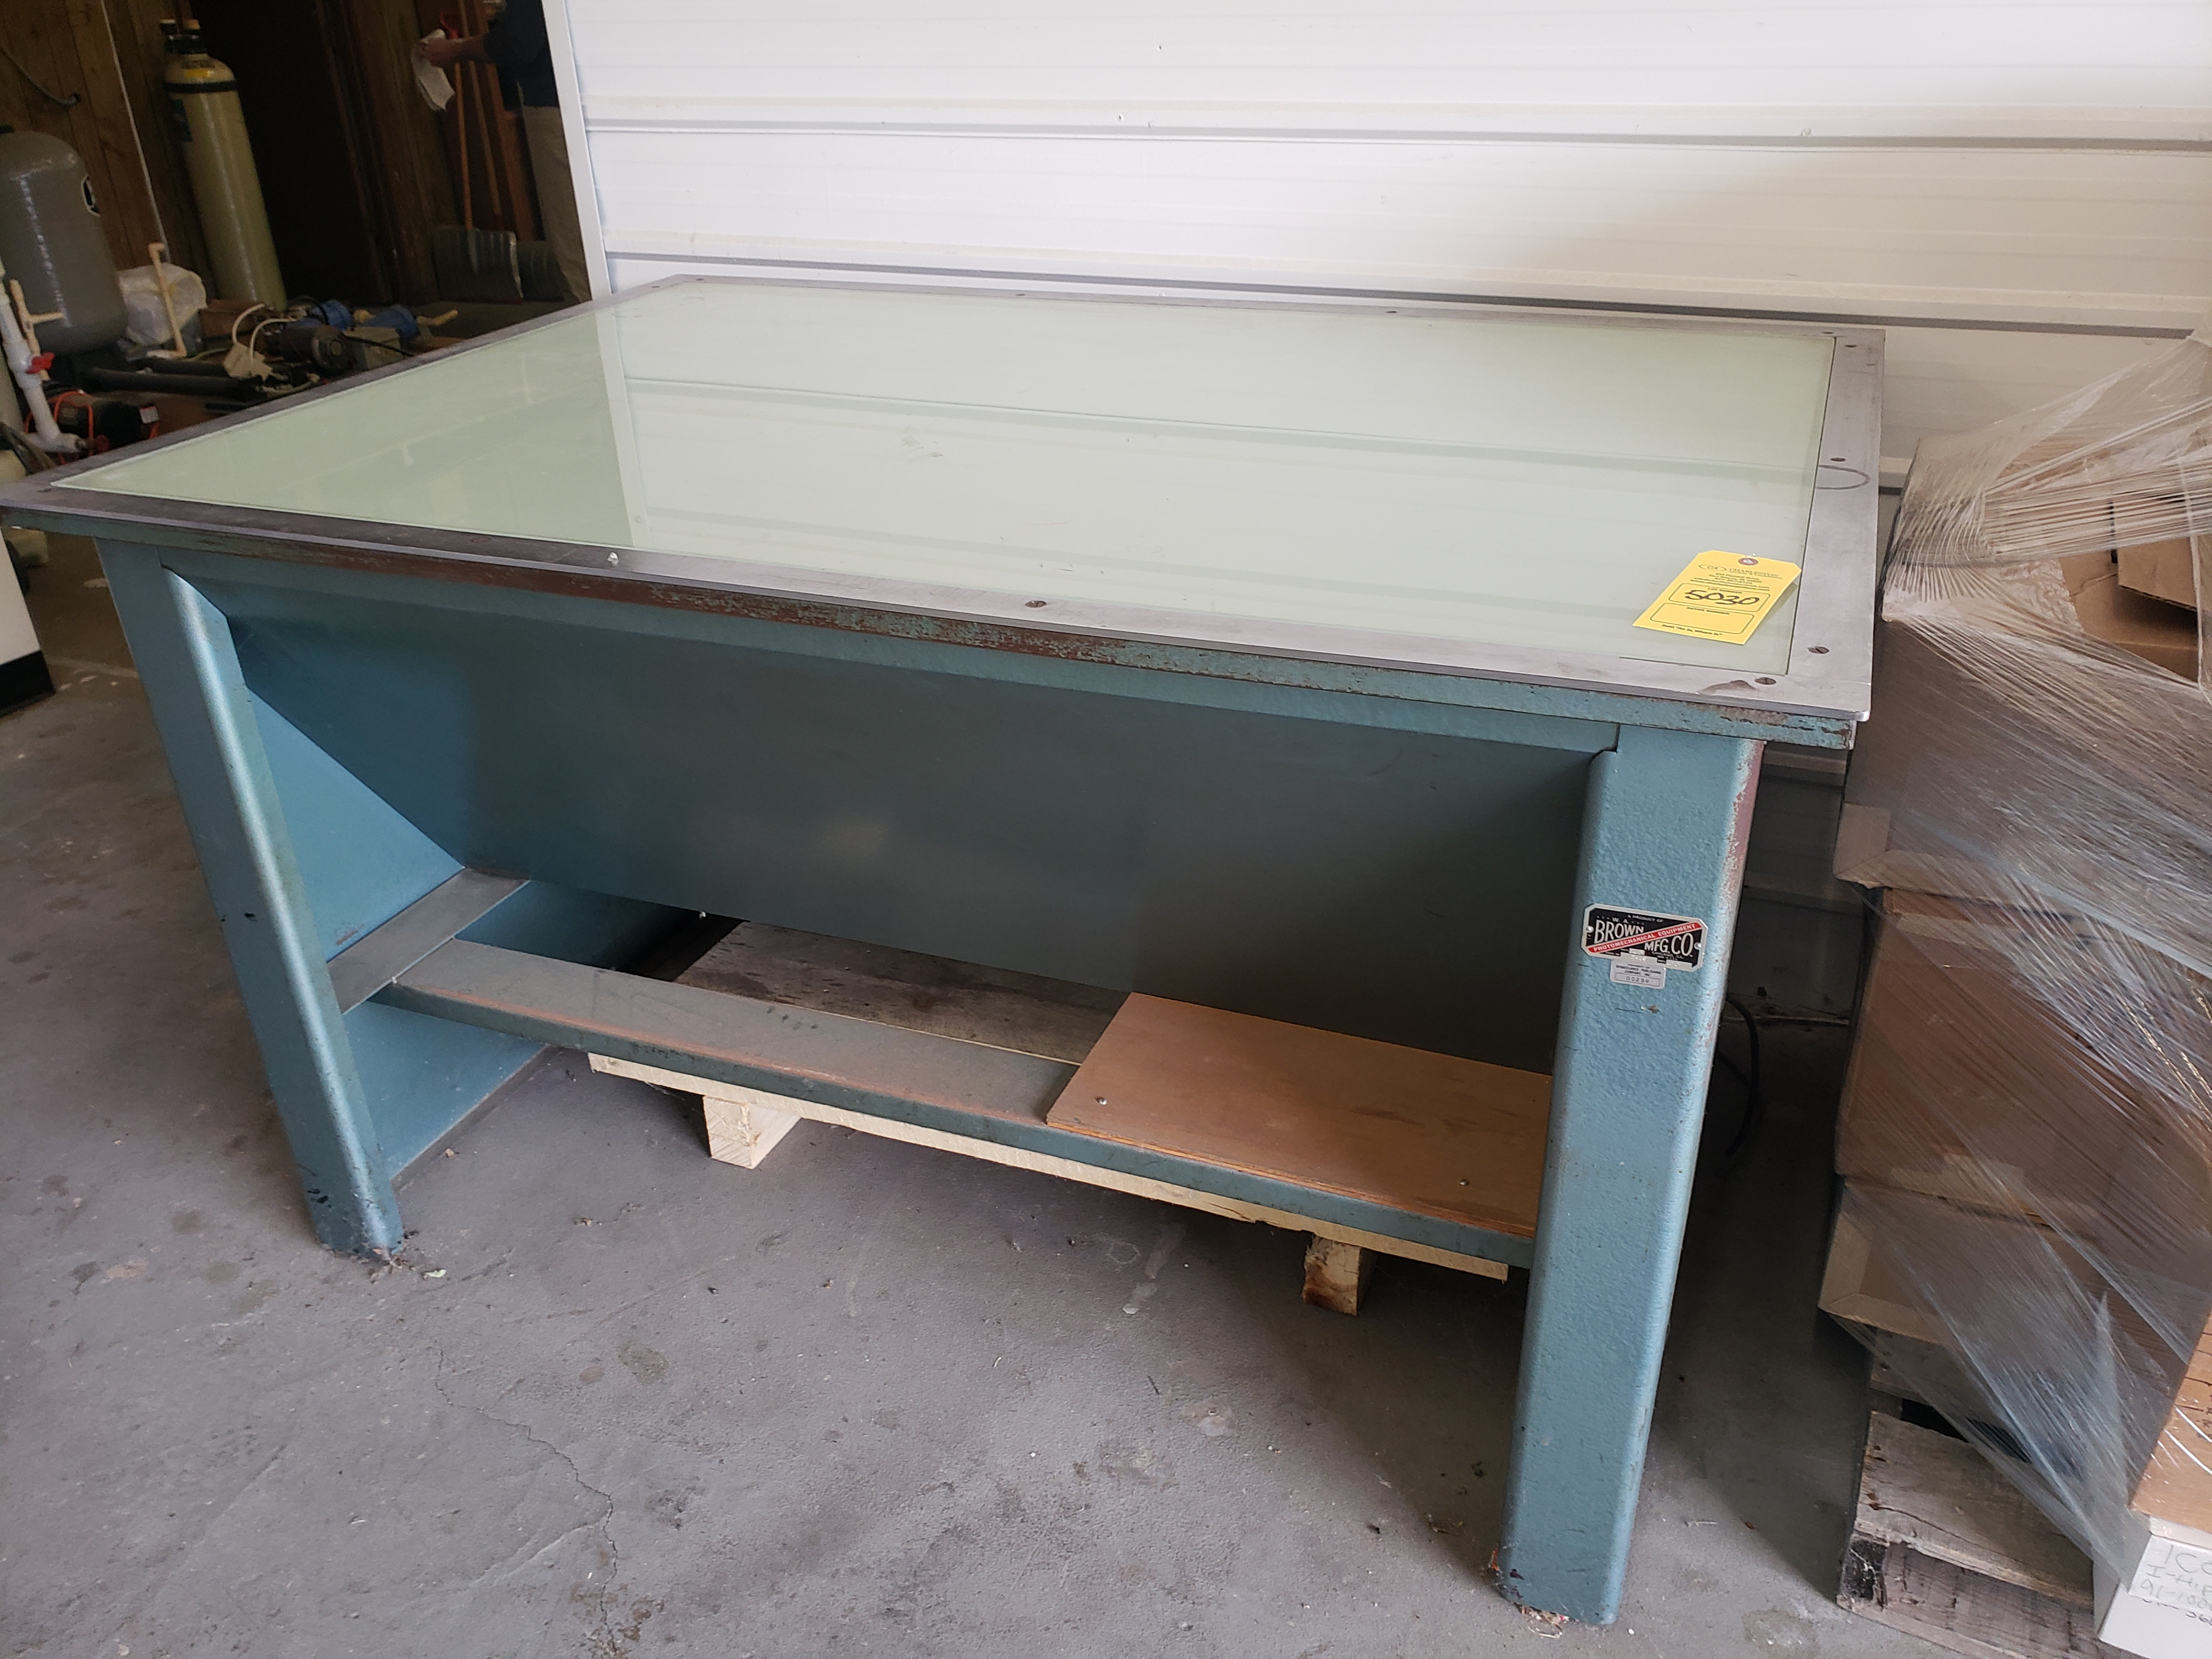 Lot 5030 - LIGHT TABLE (LOCATED AT: 16335 LIMA ROAD BLDG. 4 HUNTERTOWN, IN 46748)